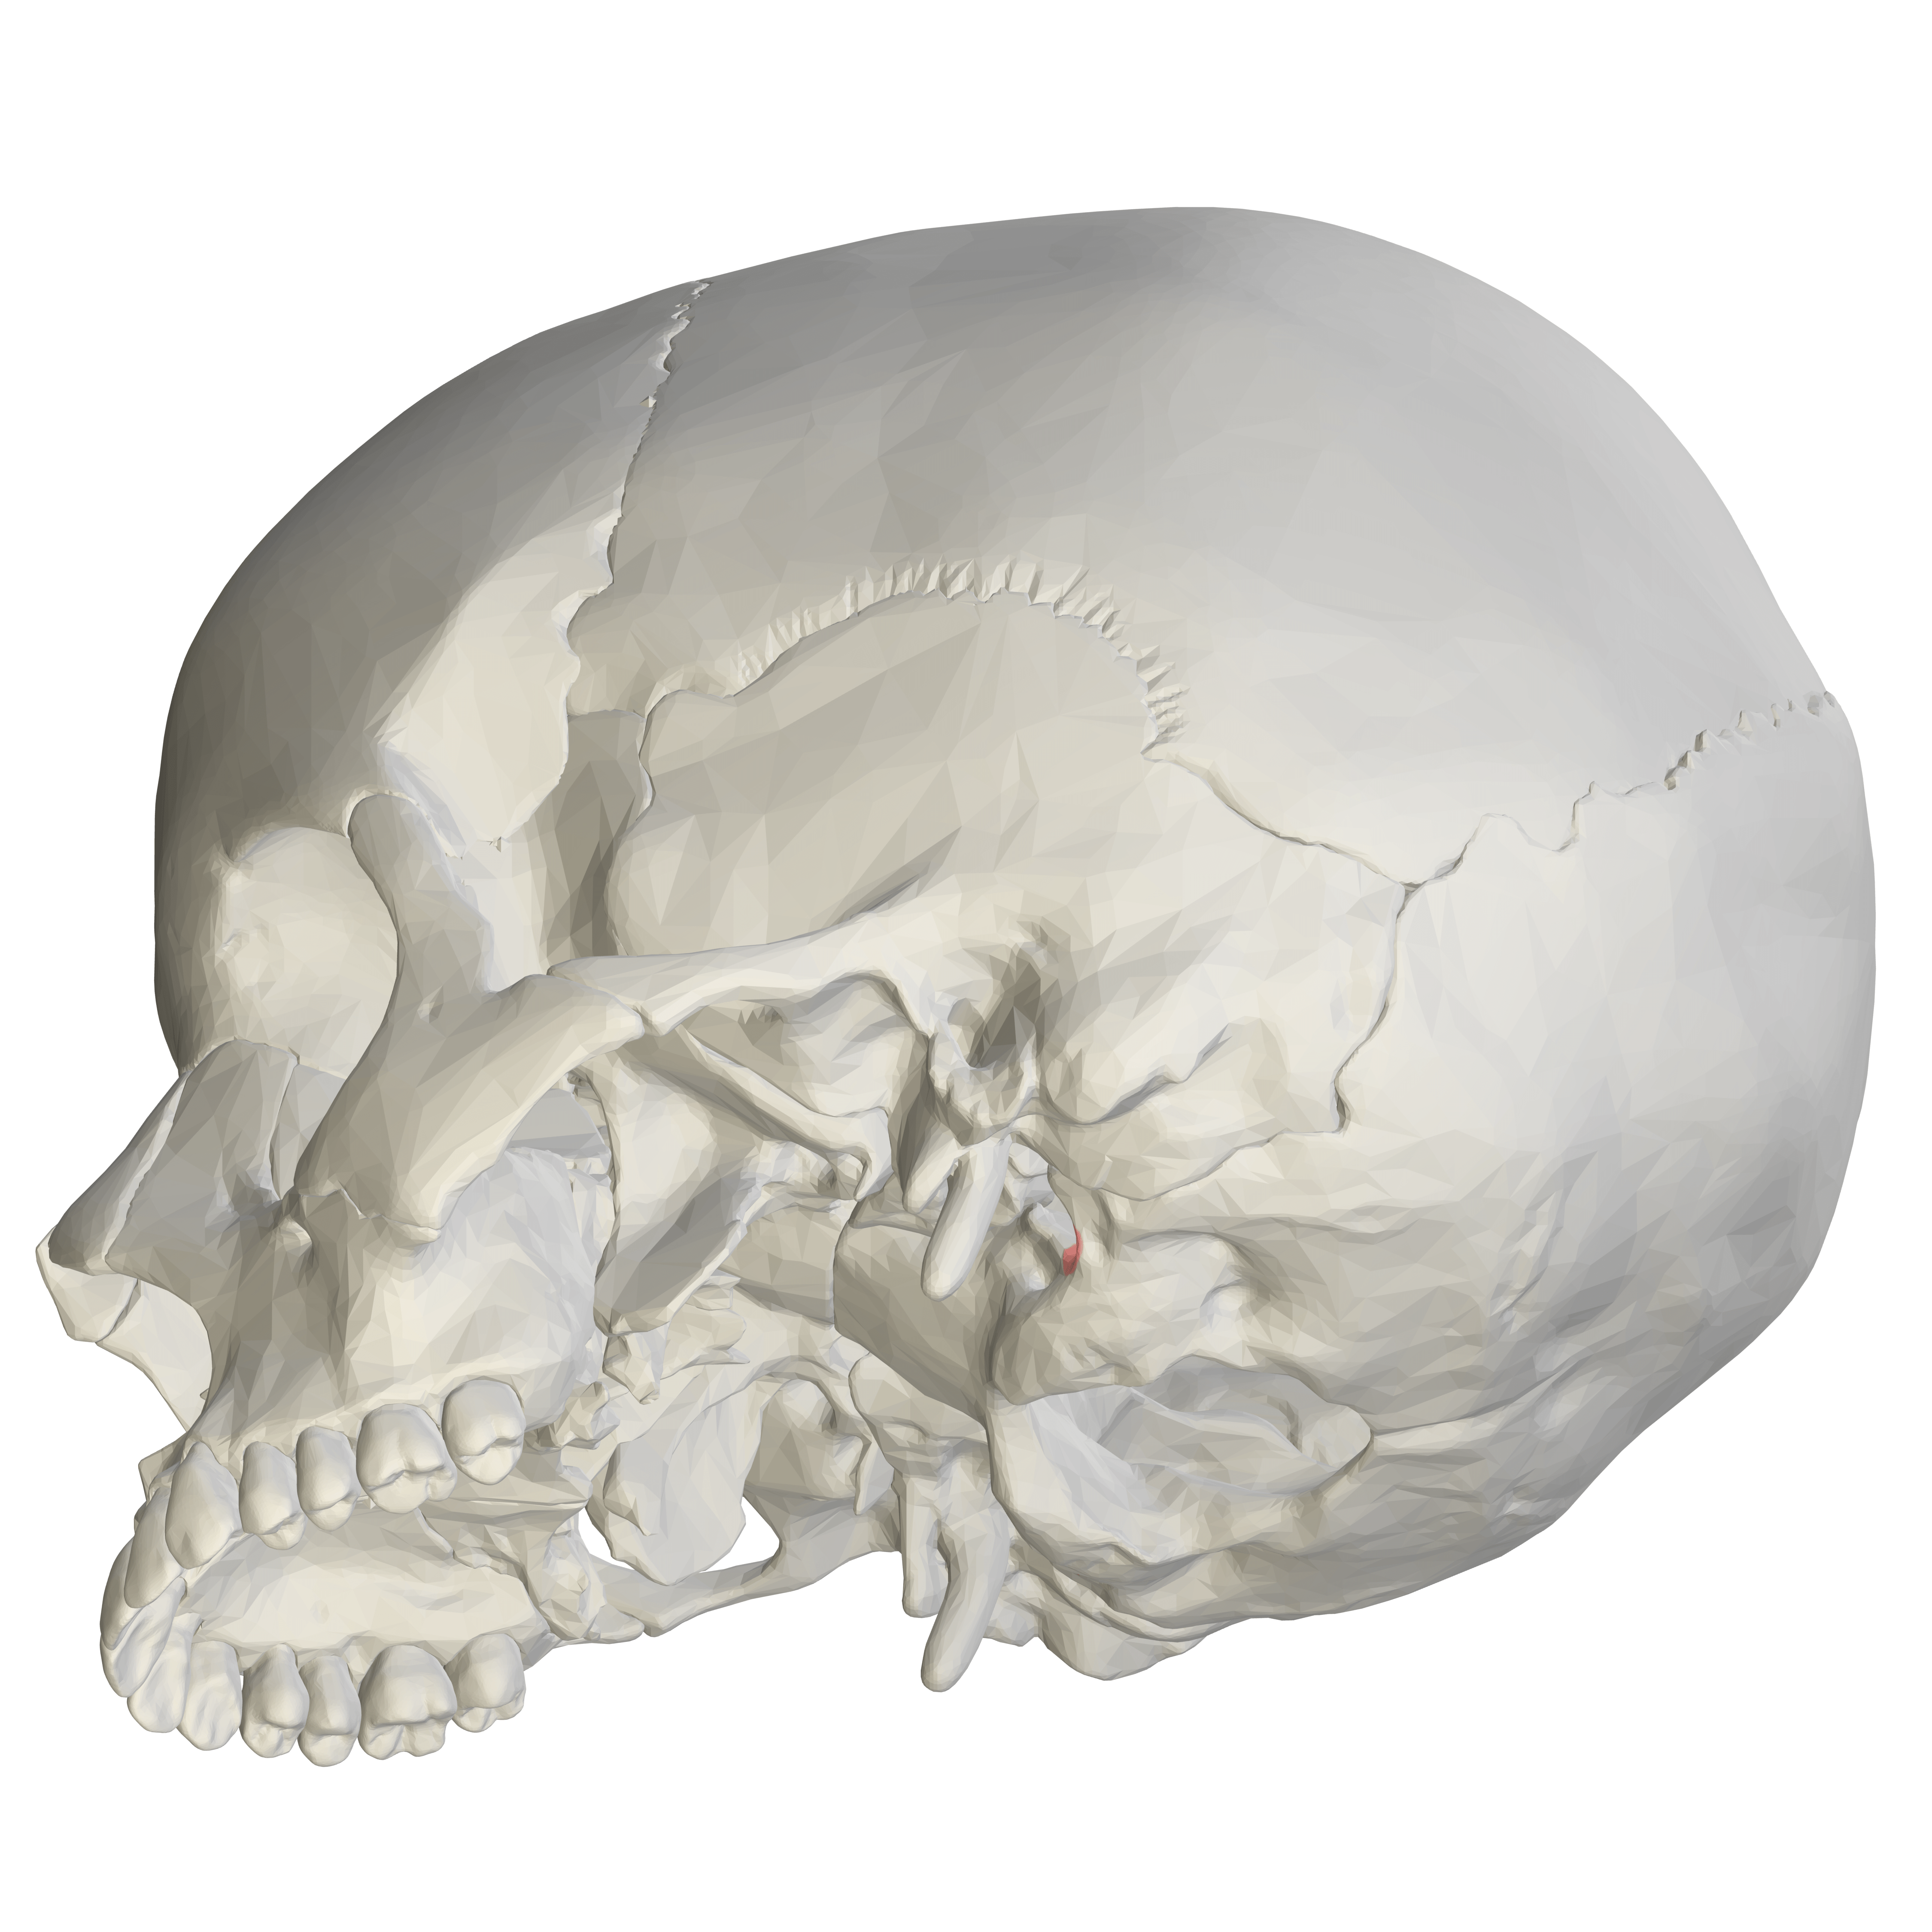 File Jugular Notch Of Occipital Bone11